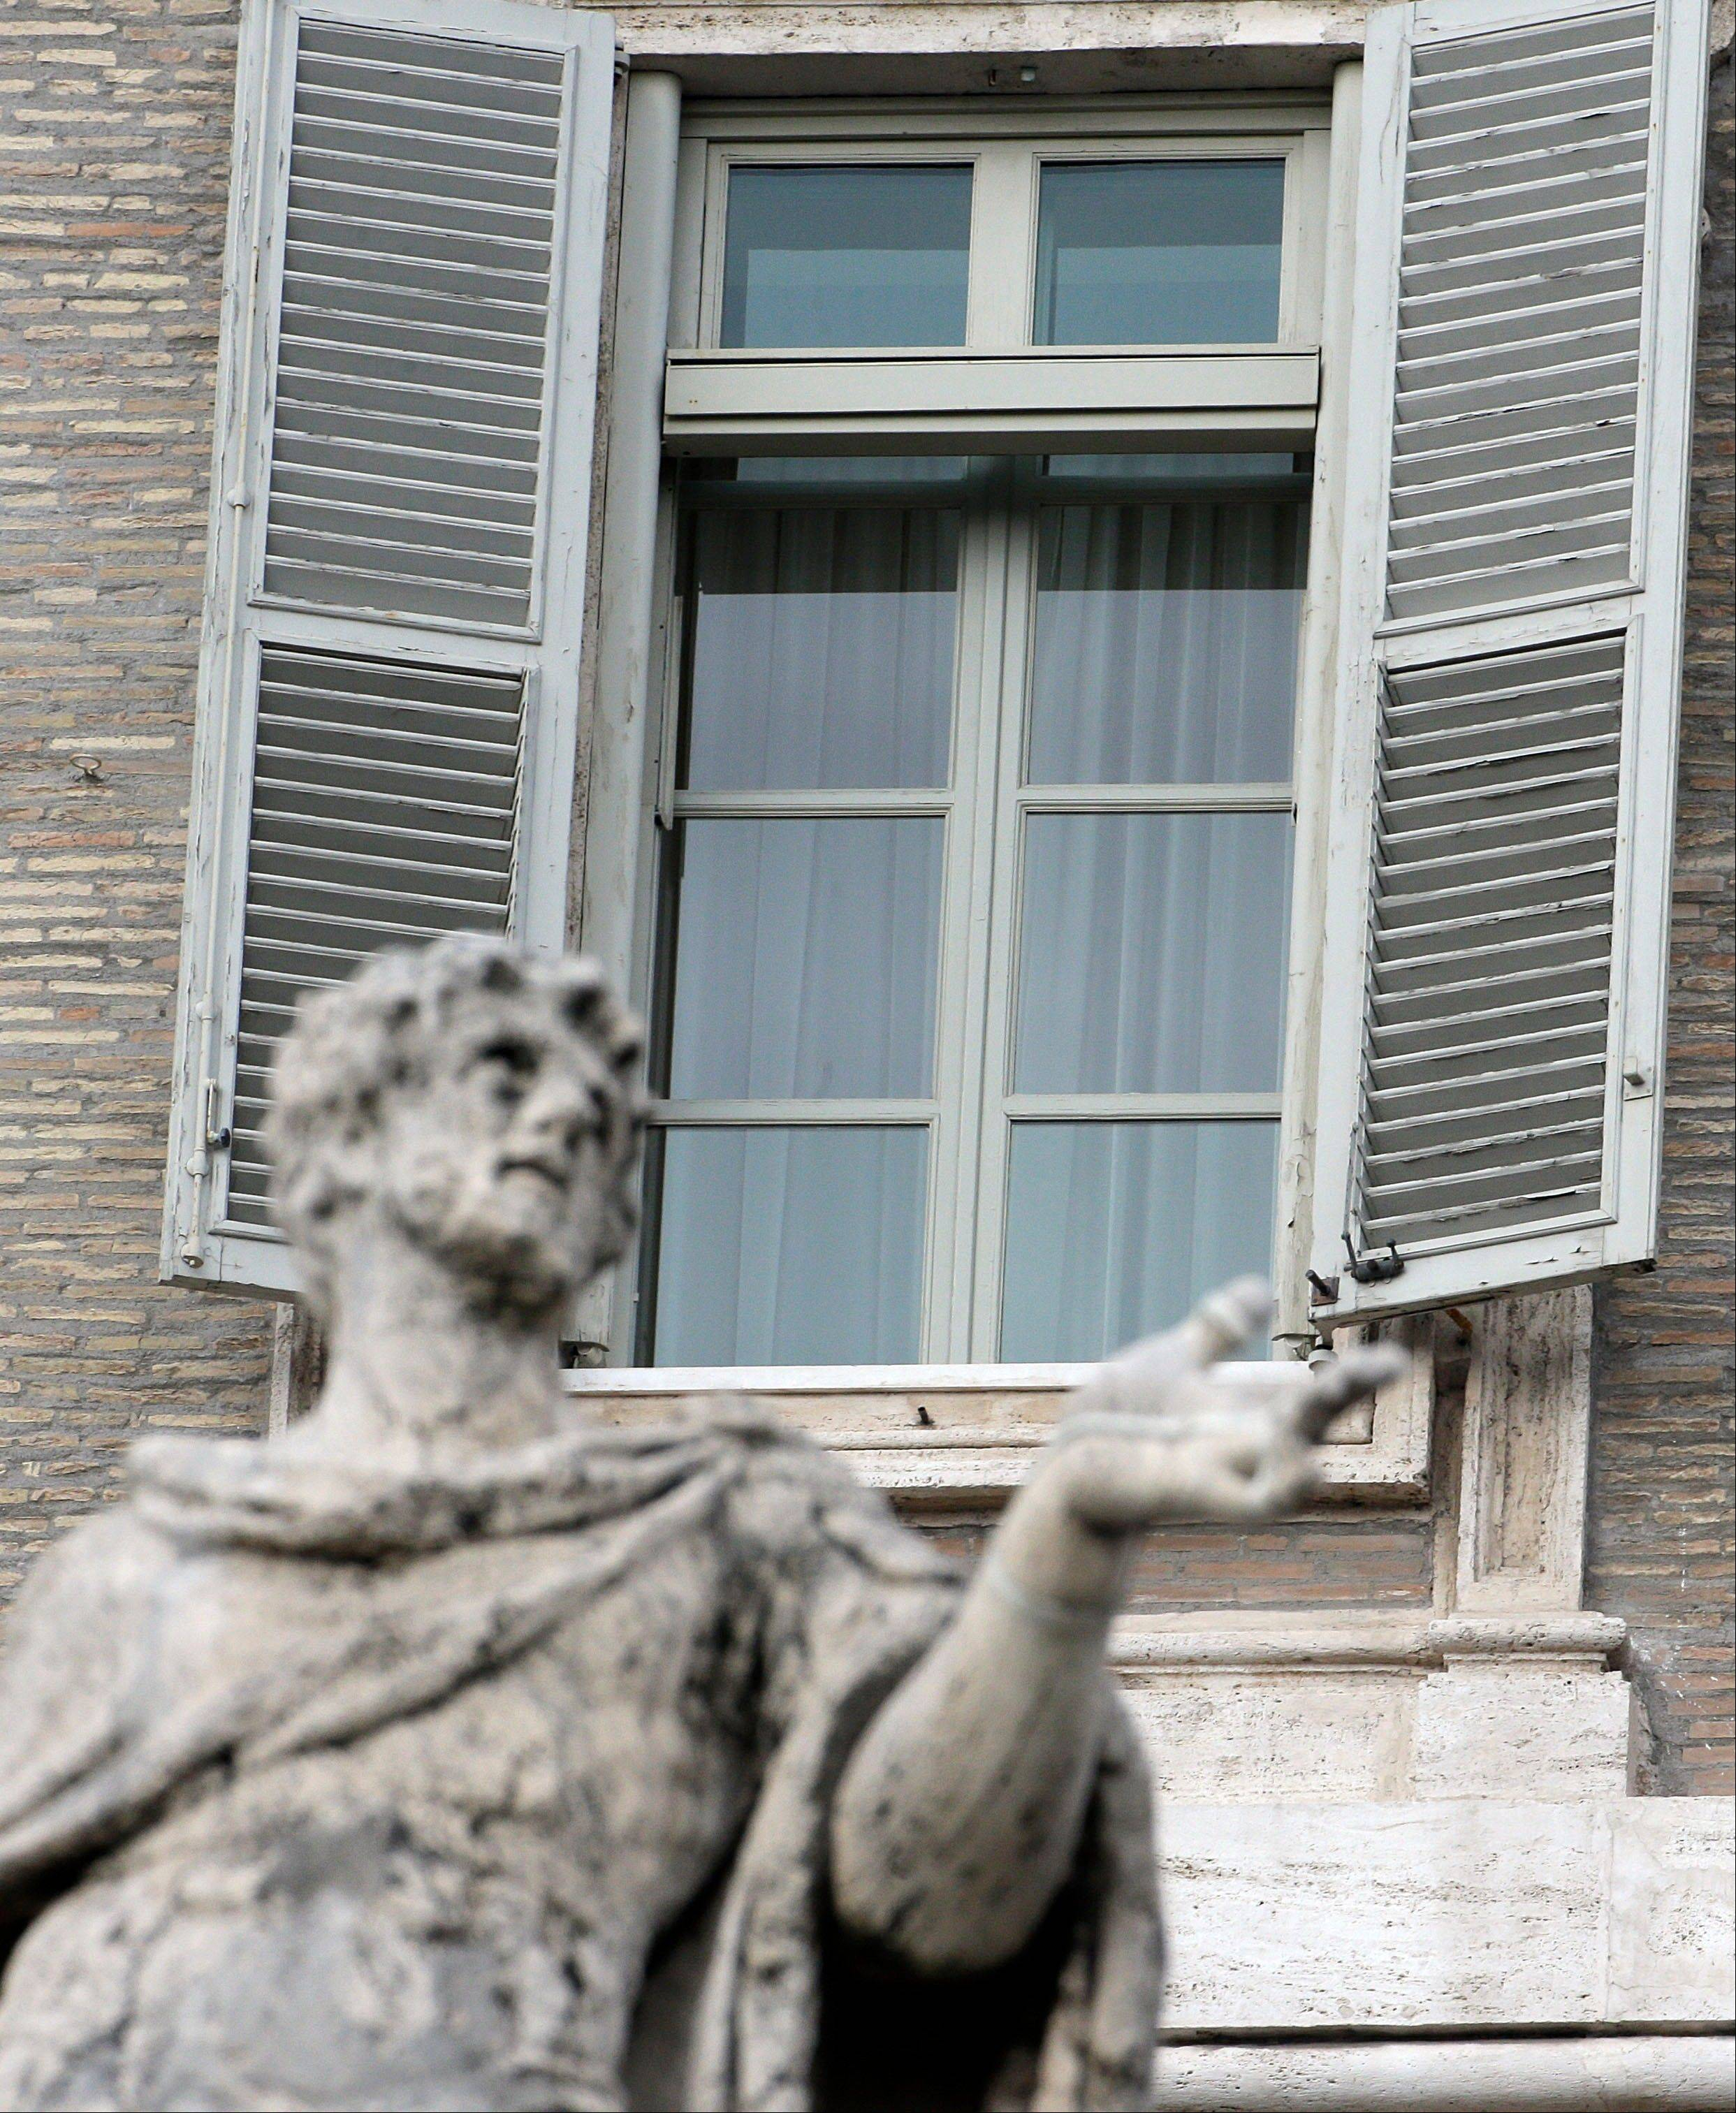 Pope Benedict XVI's studio window is seen framed by a statue at the Vatican.